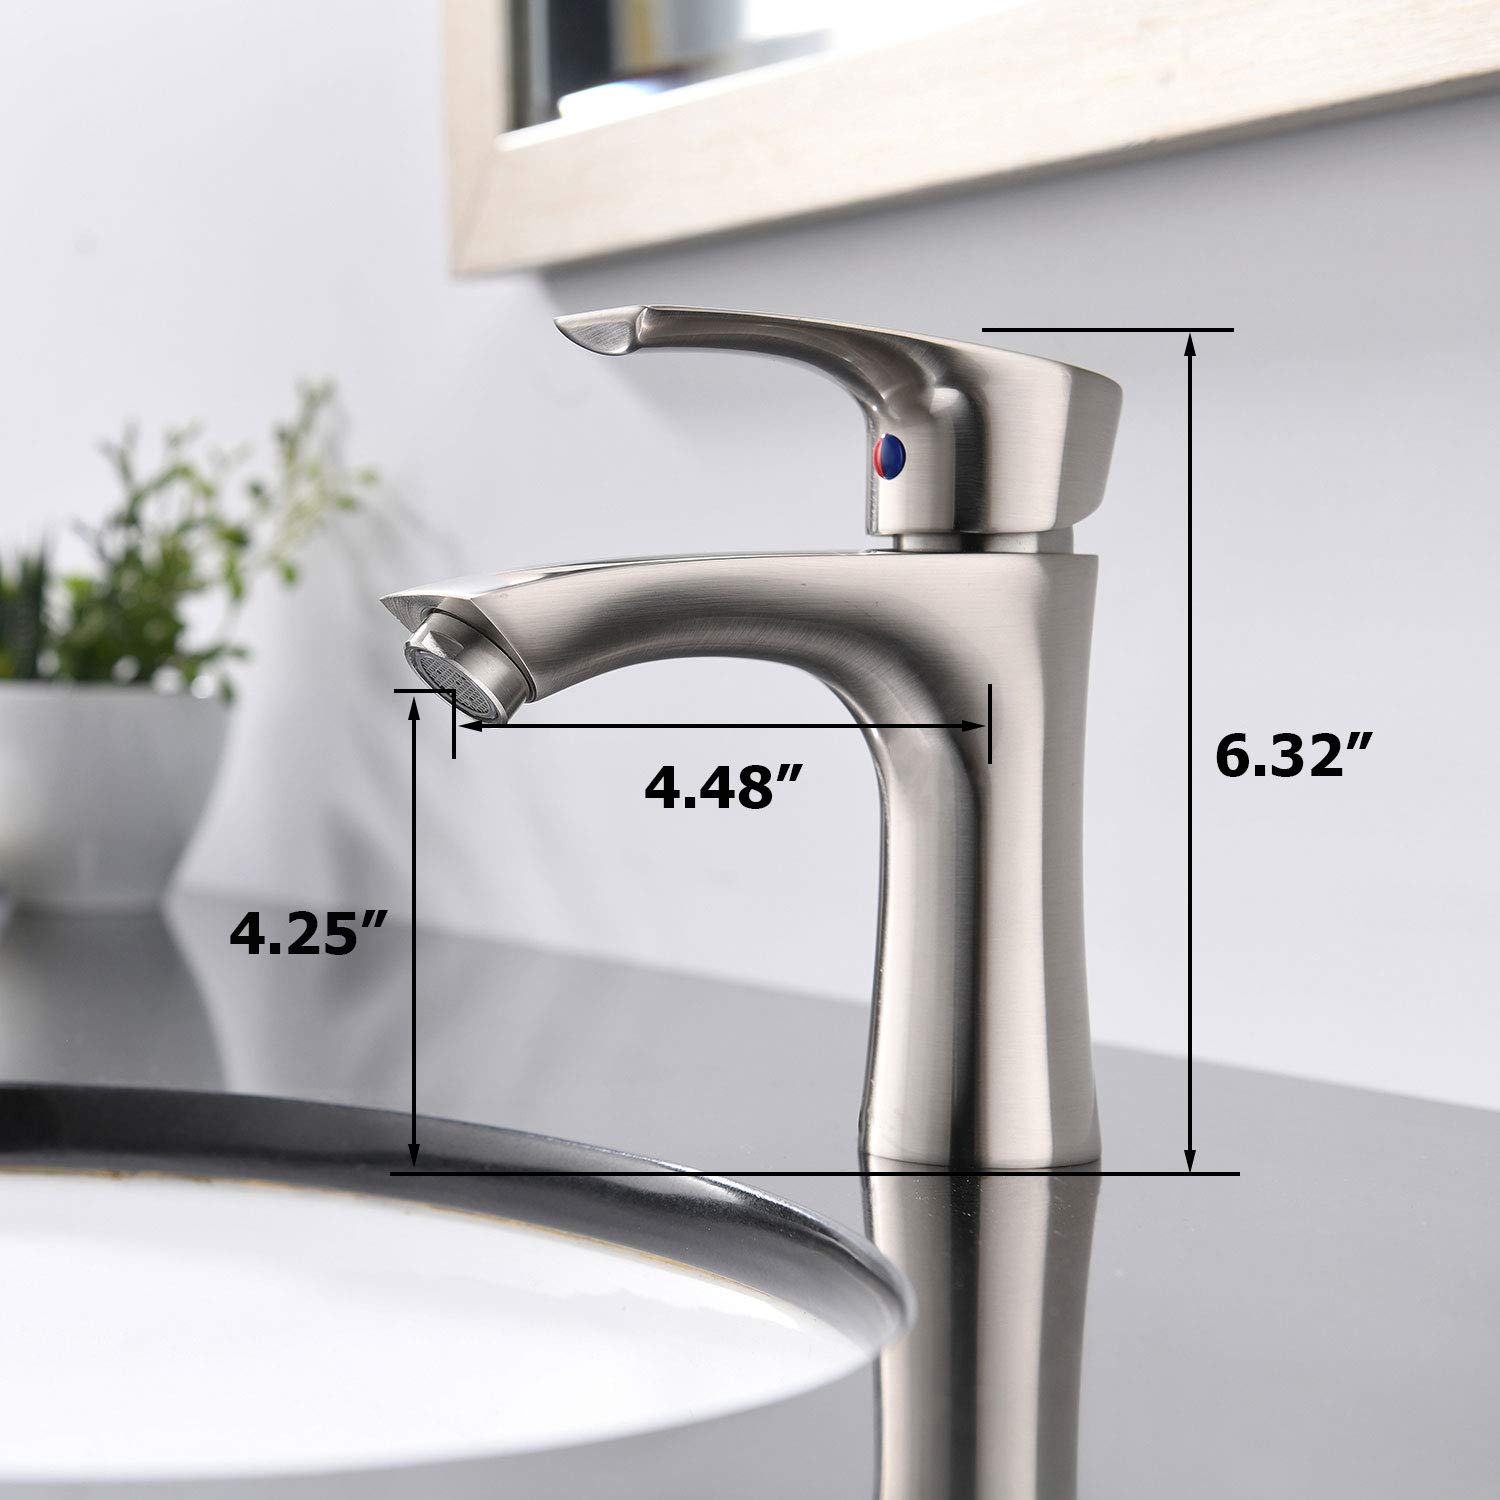 KINGO HOME Commercial Stainless Steel Lavatory Single Handle Single Hole Brushed Nickel Bathroom Faucets, Hot and Cold Water Vanity Sink Faucet by KINGO HOME (Image #2)